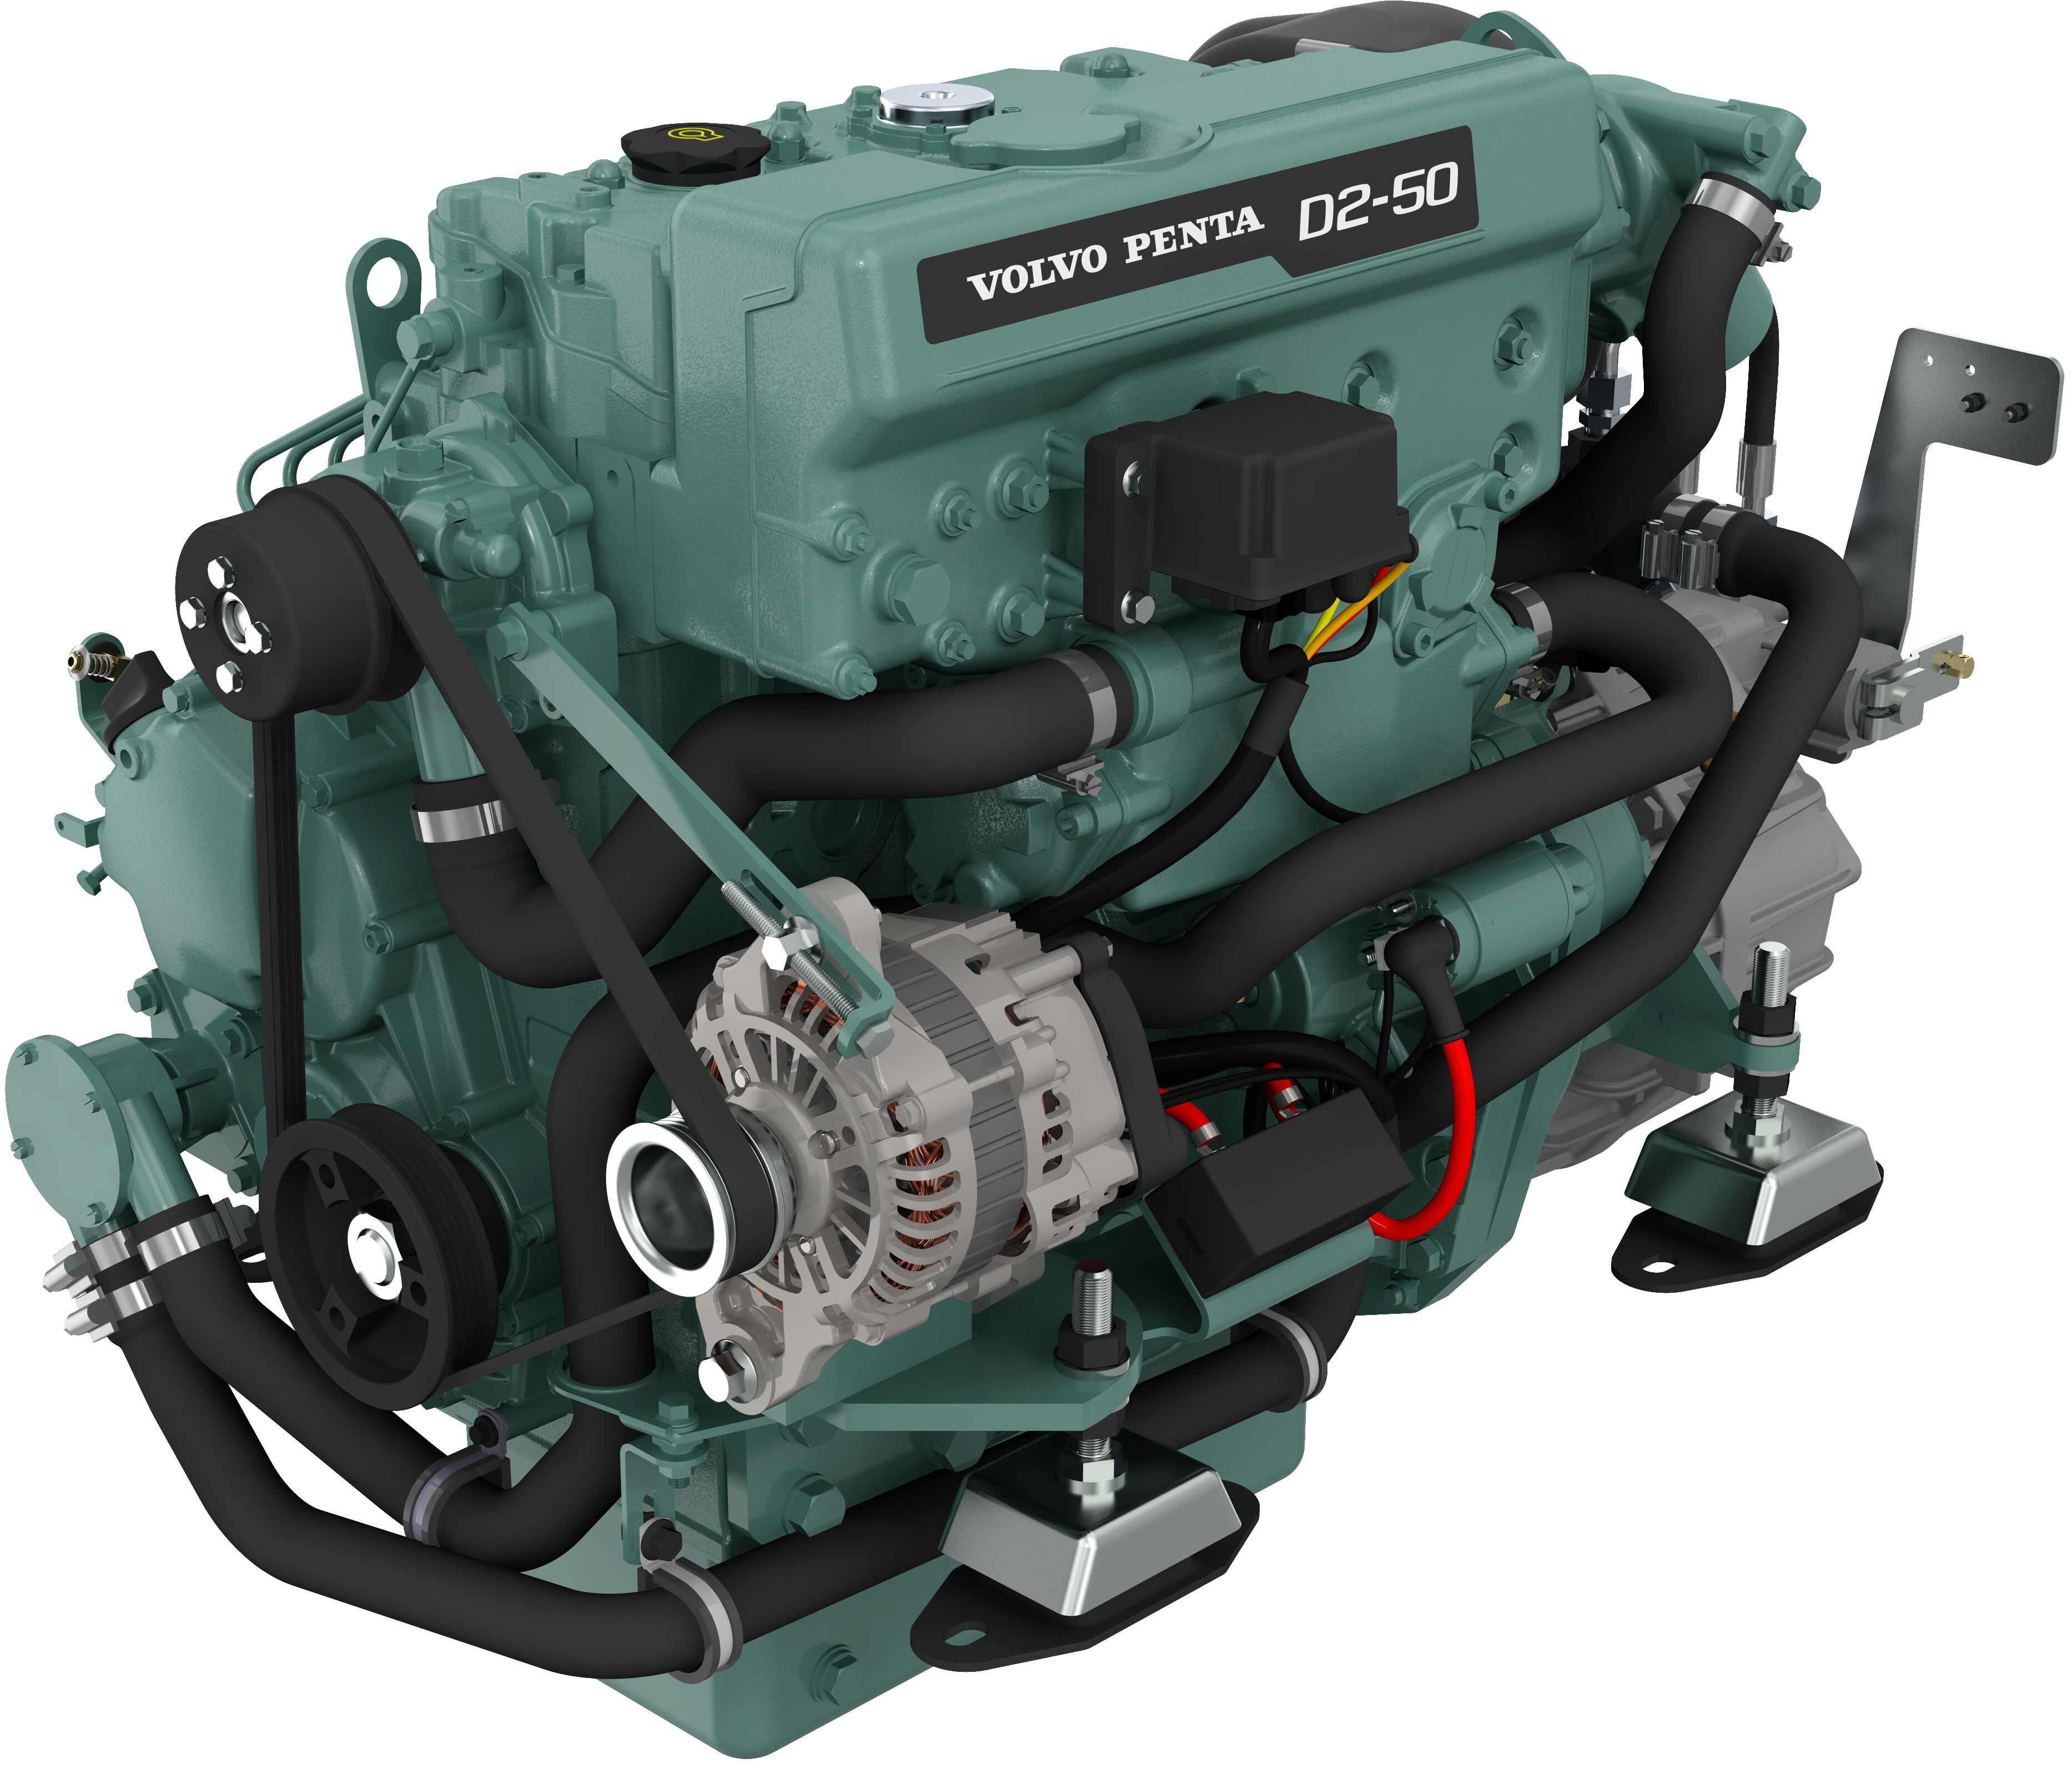 D2-50 With MS25A/L Gearbox